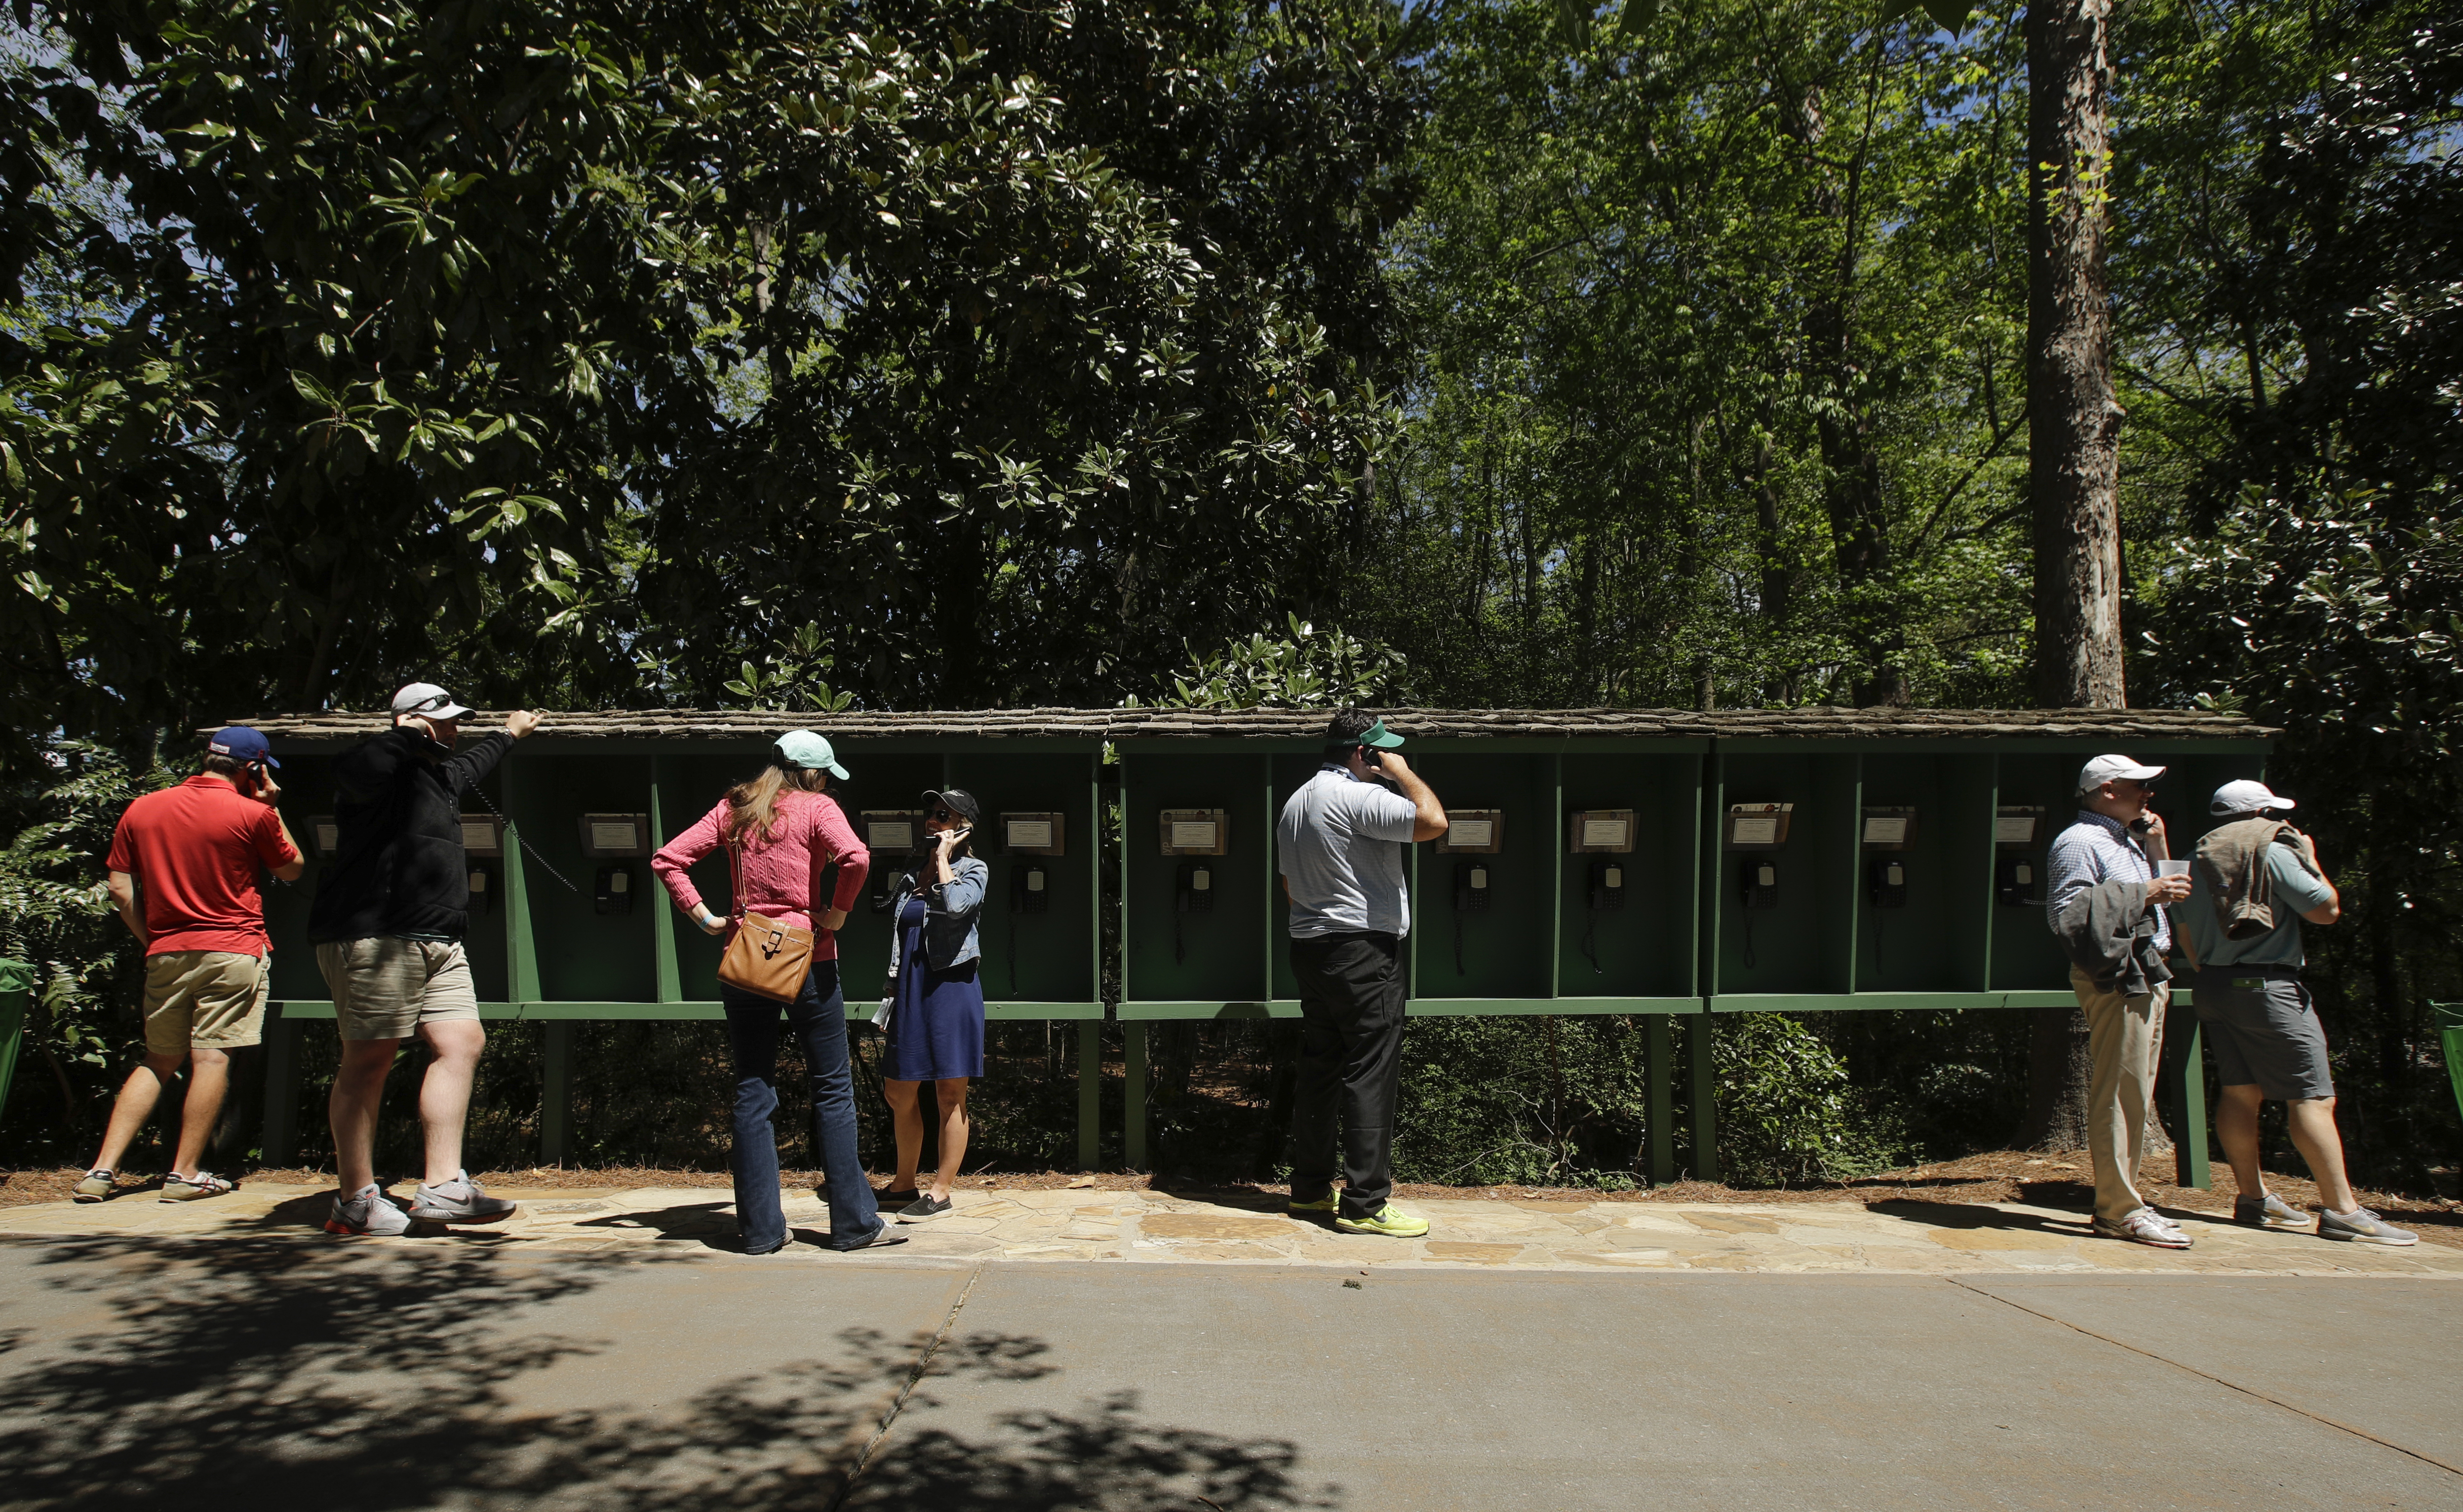 Patrons use pay phones on the Augusta National golf course during the third round of the Masters golf tournament Saturday, April 8, 2017, in Augusta, Ga. No cell phones are allowed on the course. (AP Photo/Charlie Riedel)